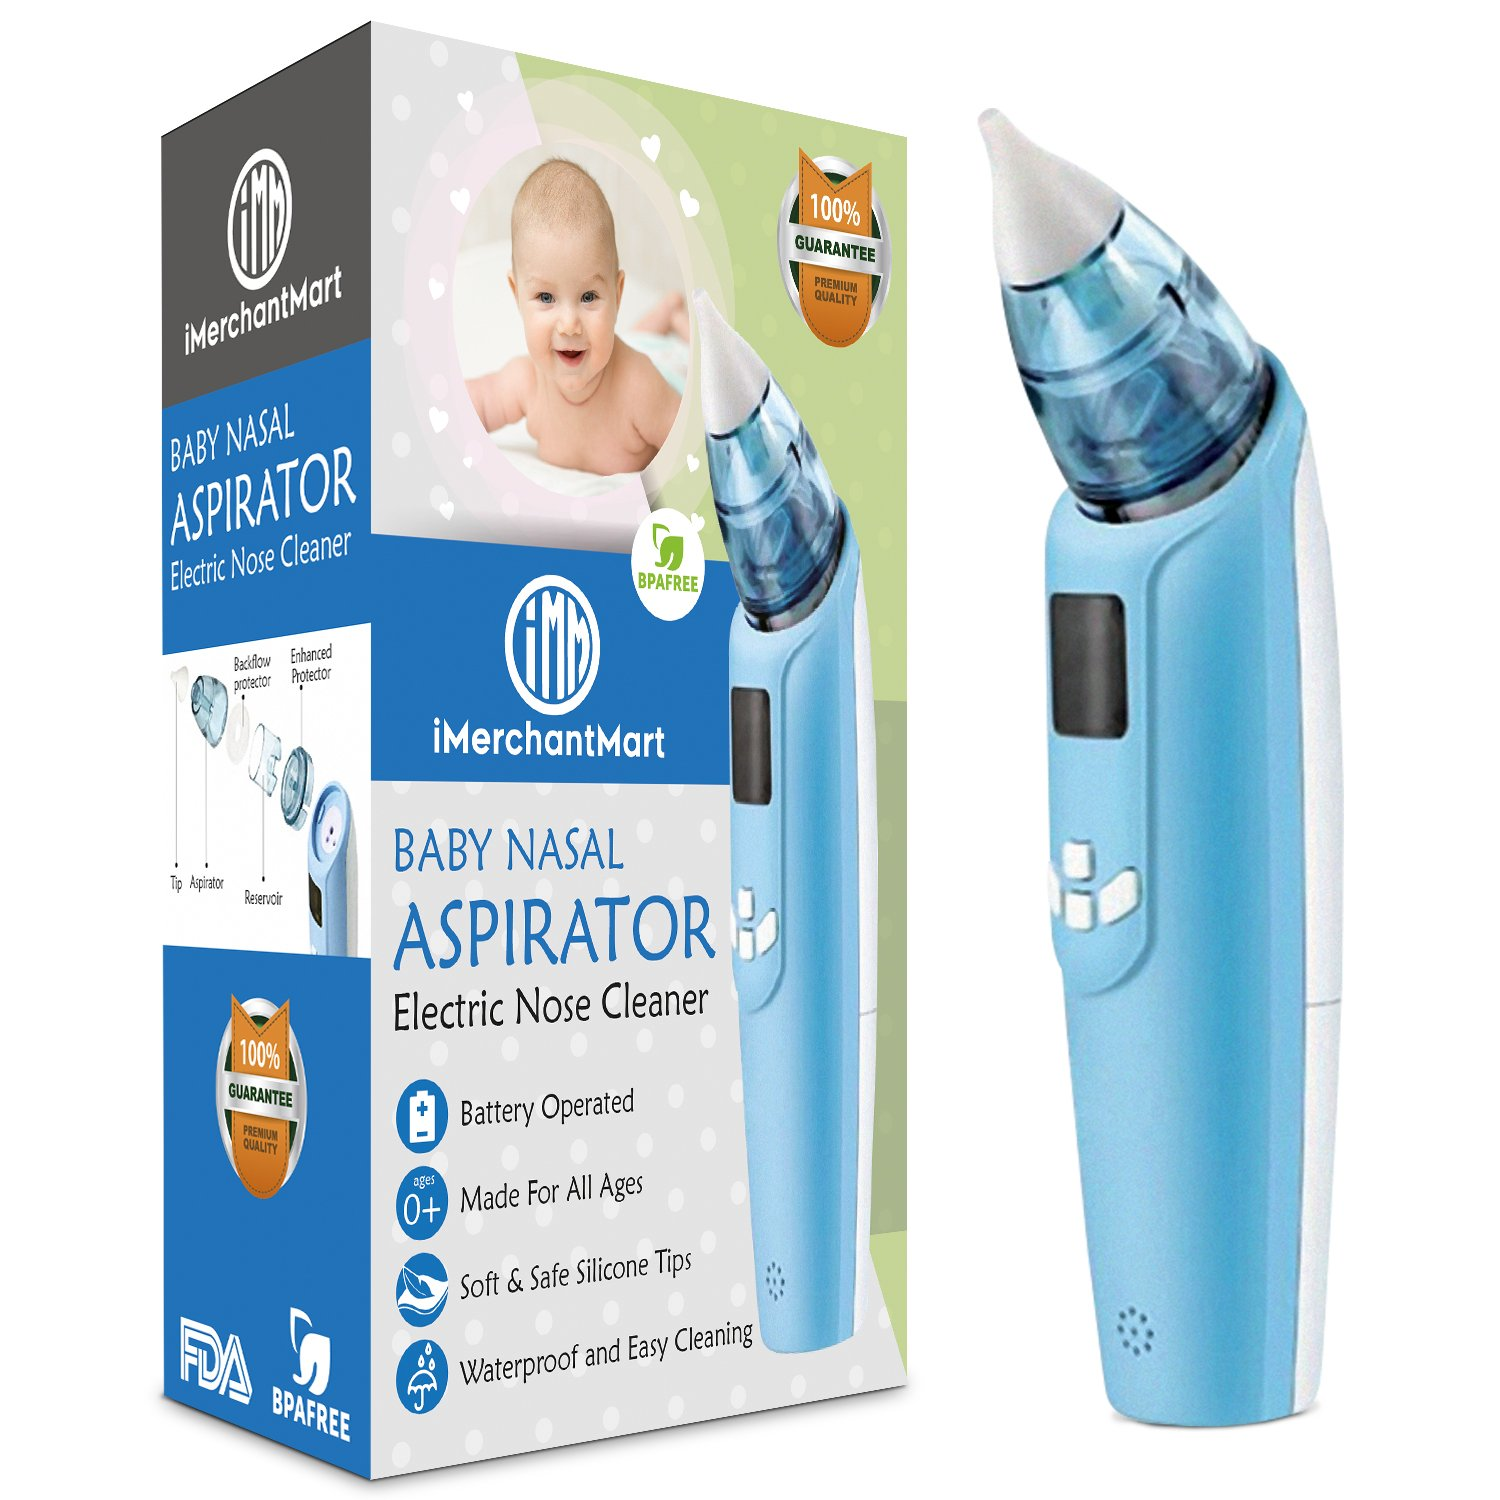 Baby Nasal Aspirator - Safe Electric Battery Operated Nose Cleaner with Built-in Light, Music, LCD Screen, and 3 Levels of Suction Power | Snot Sucker with Nose Tips for Infants and Toddlers by iMerchantMart